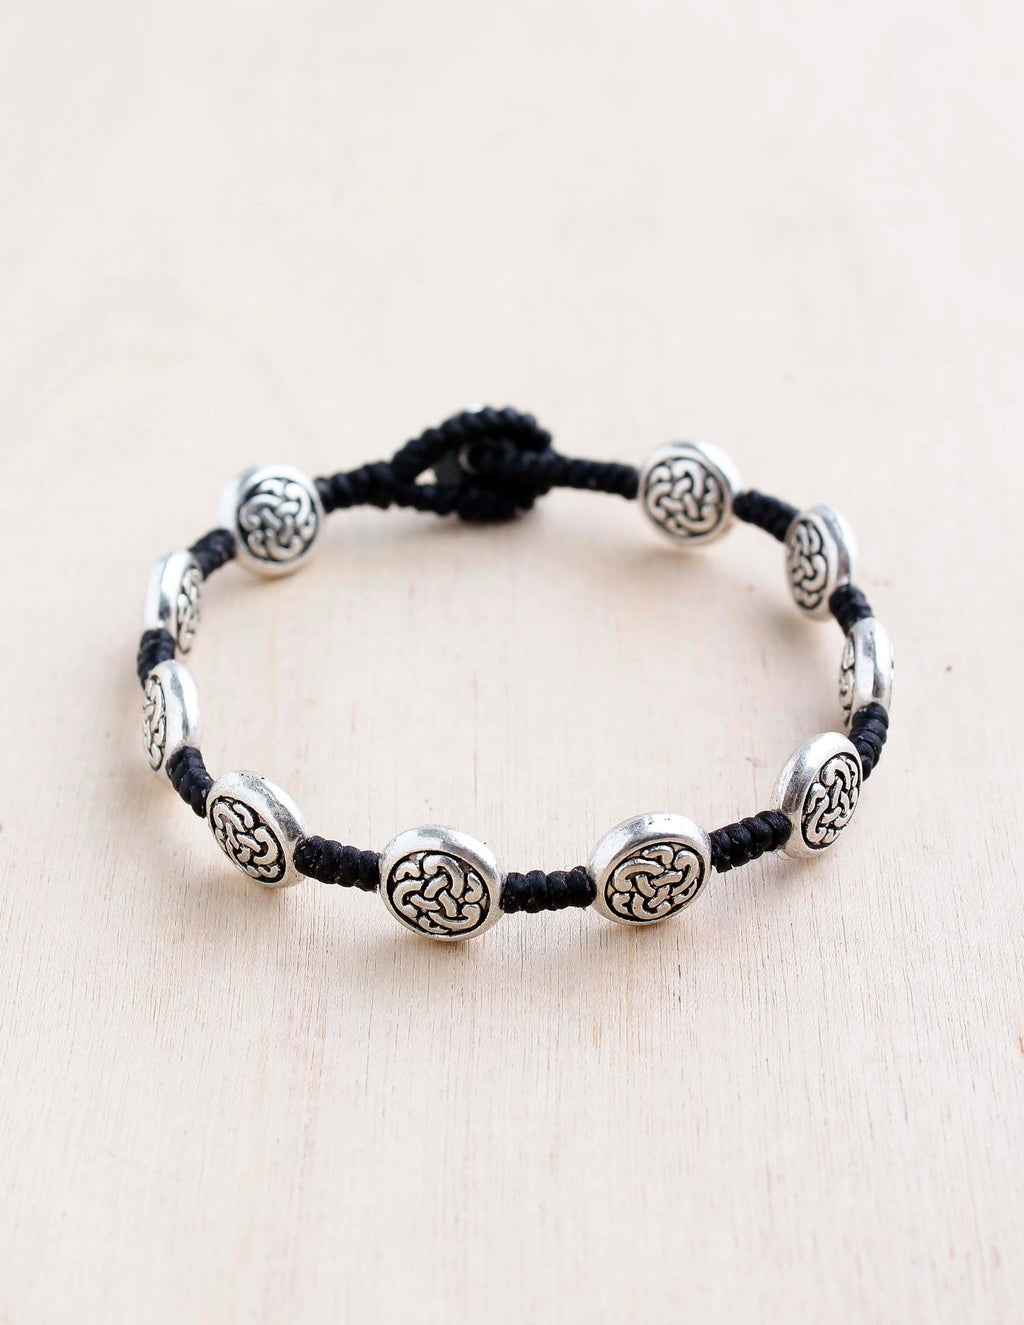 alloy, bali queen, coco rose, silver, rhodium, hypoallergenic, tribal jewelry, single strand, Celtic